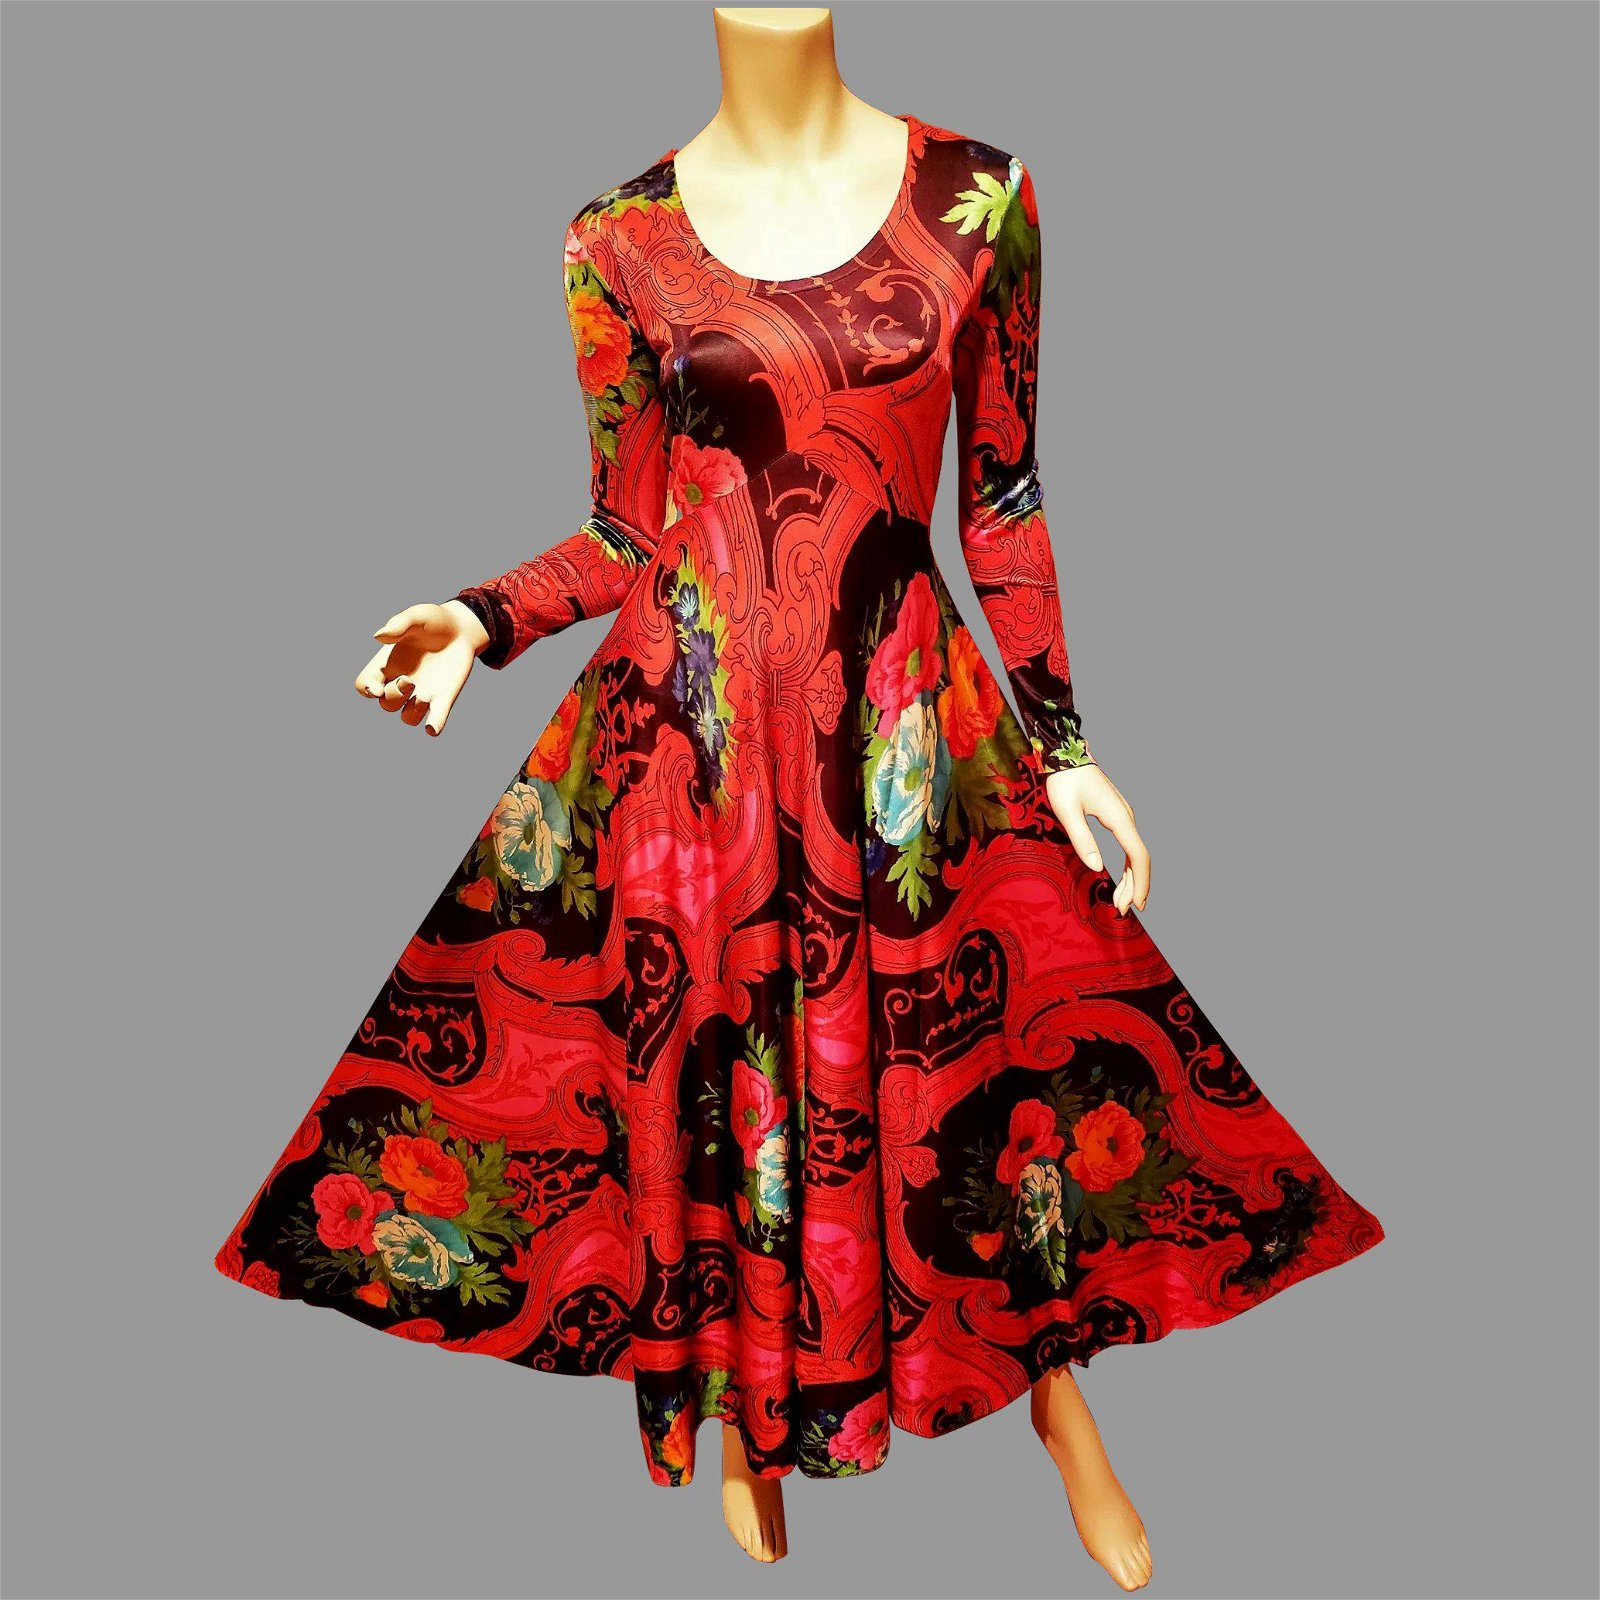 Hobo Chic 1950's multi colored floral printed maxi gown